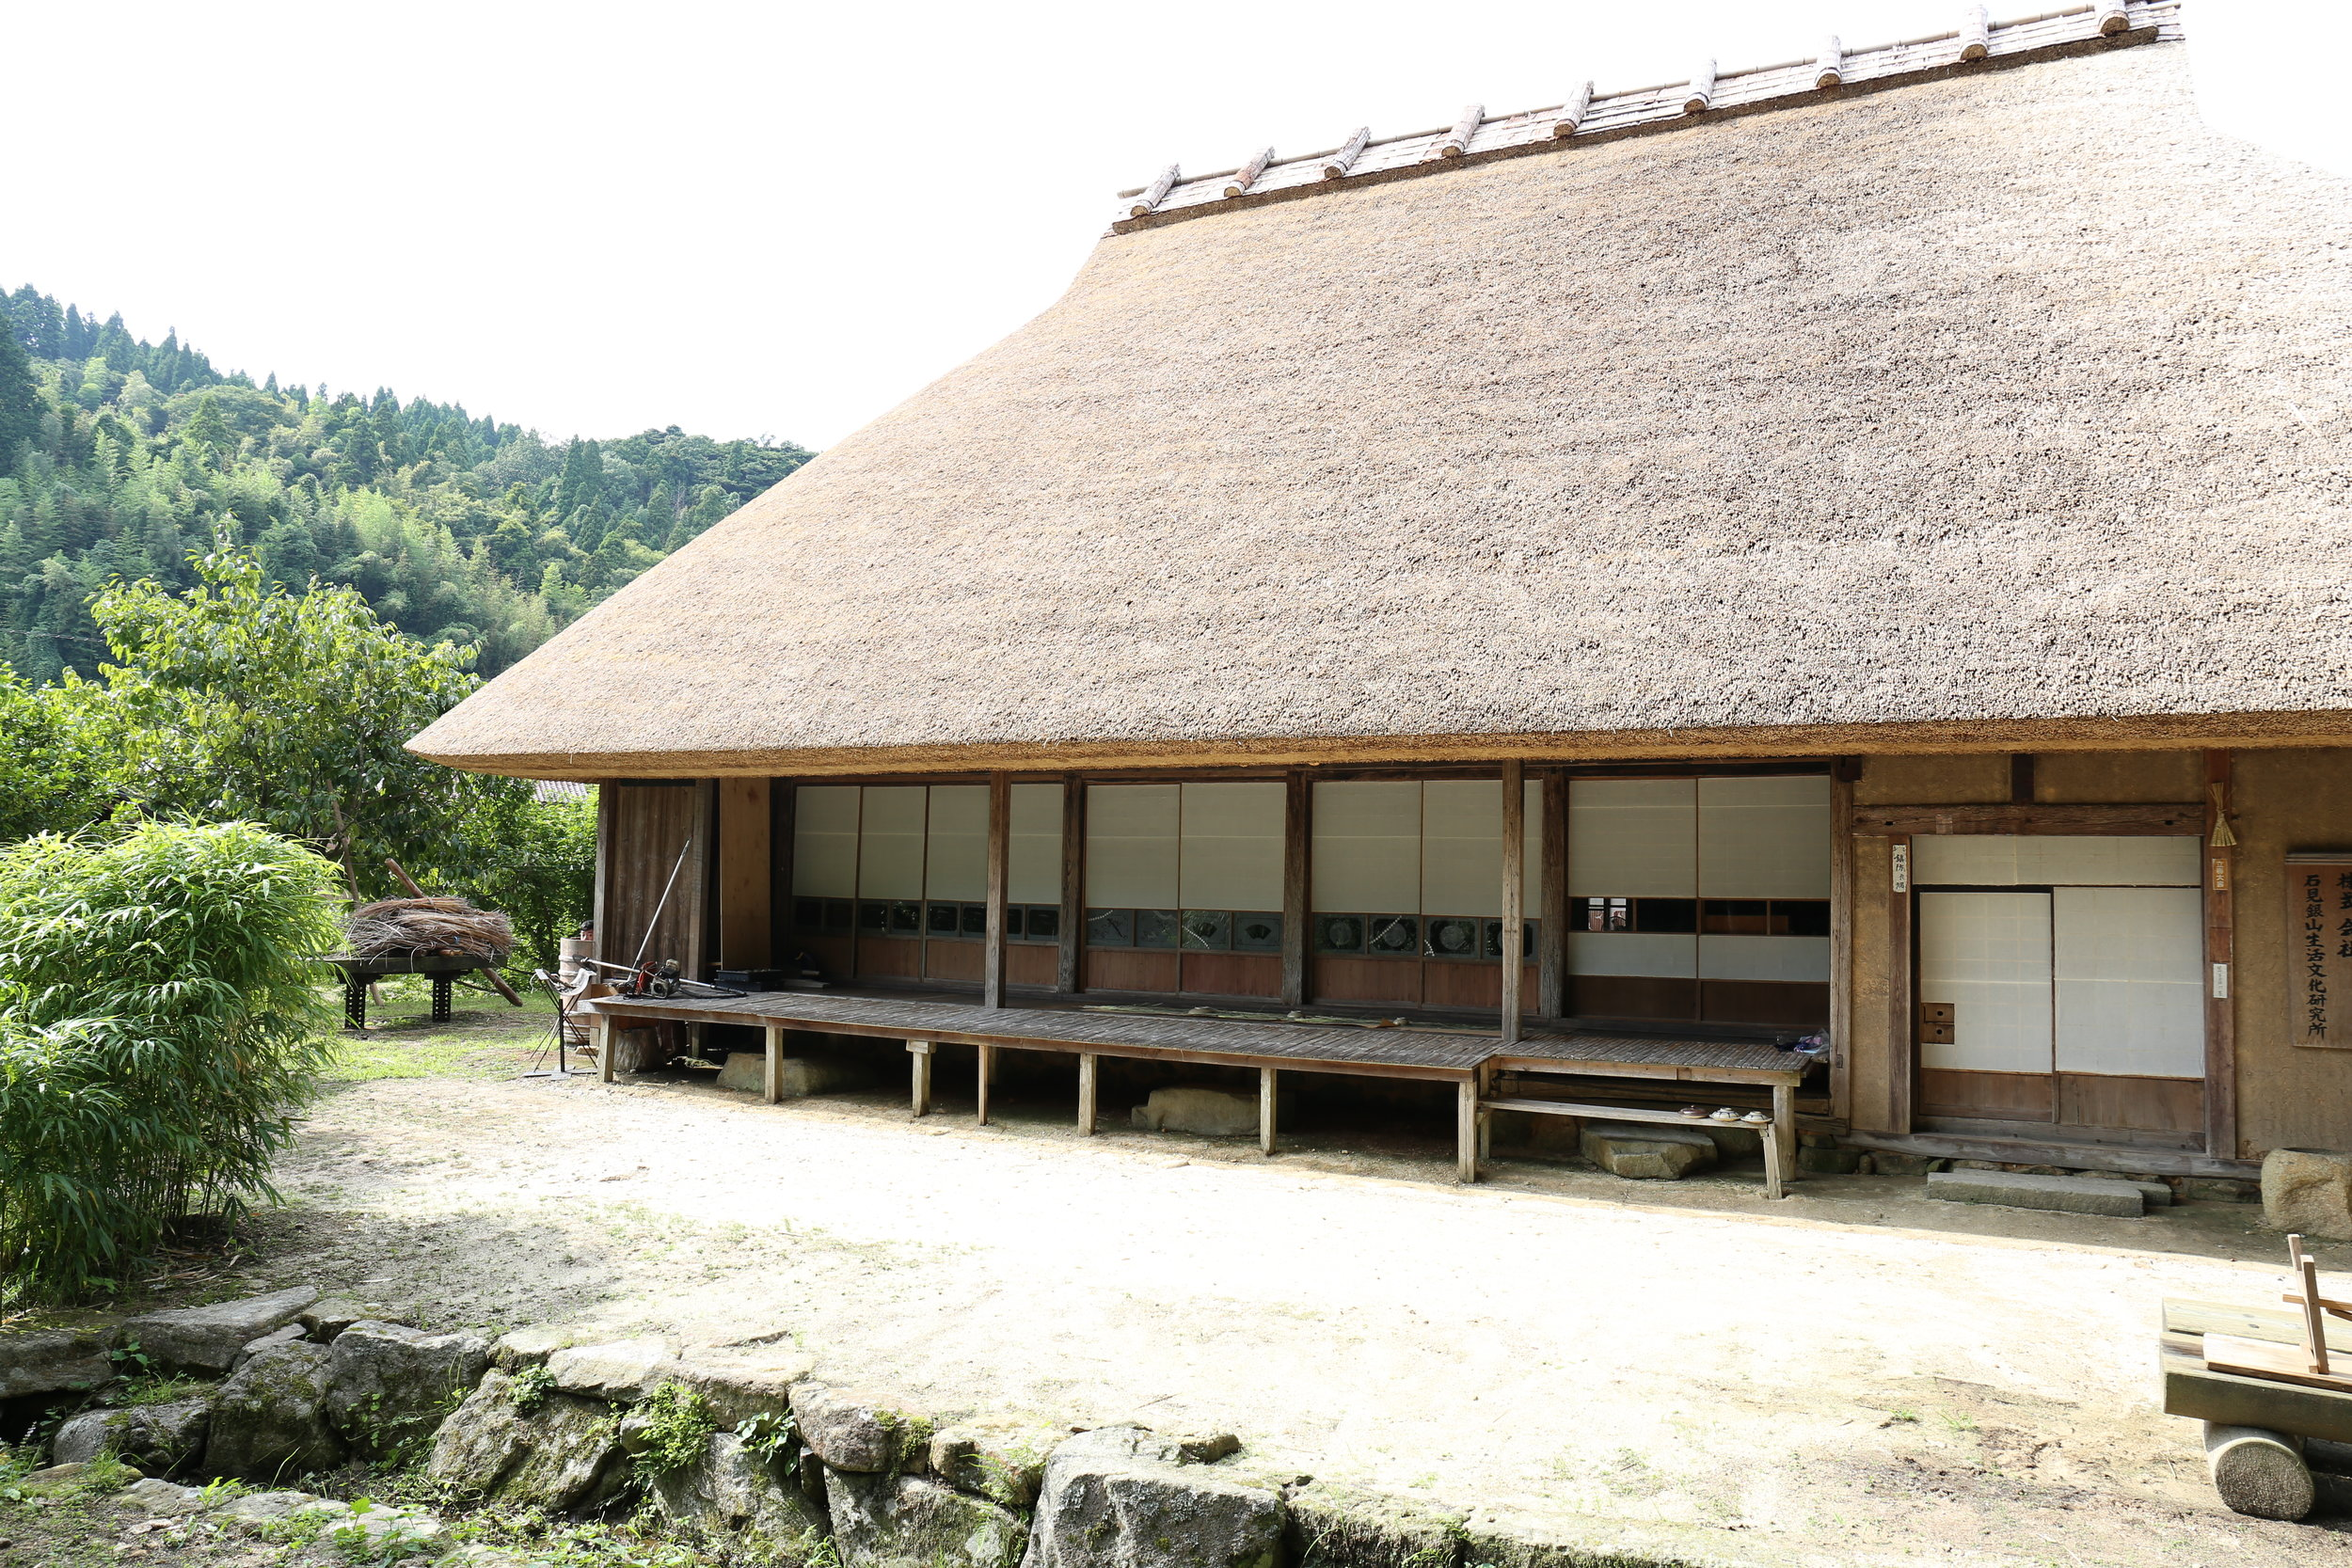 鄙舎 Hinaya - With a desire to recreate not only the house but the lifestyle itself, this thatched-roof house was dismantled and brought from Hiroshima to Shimane, where it was reconstructed. It is the symbol of our company.